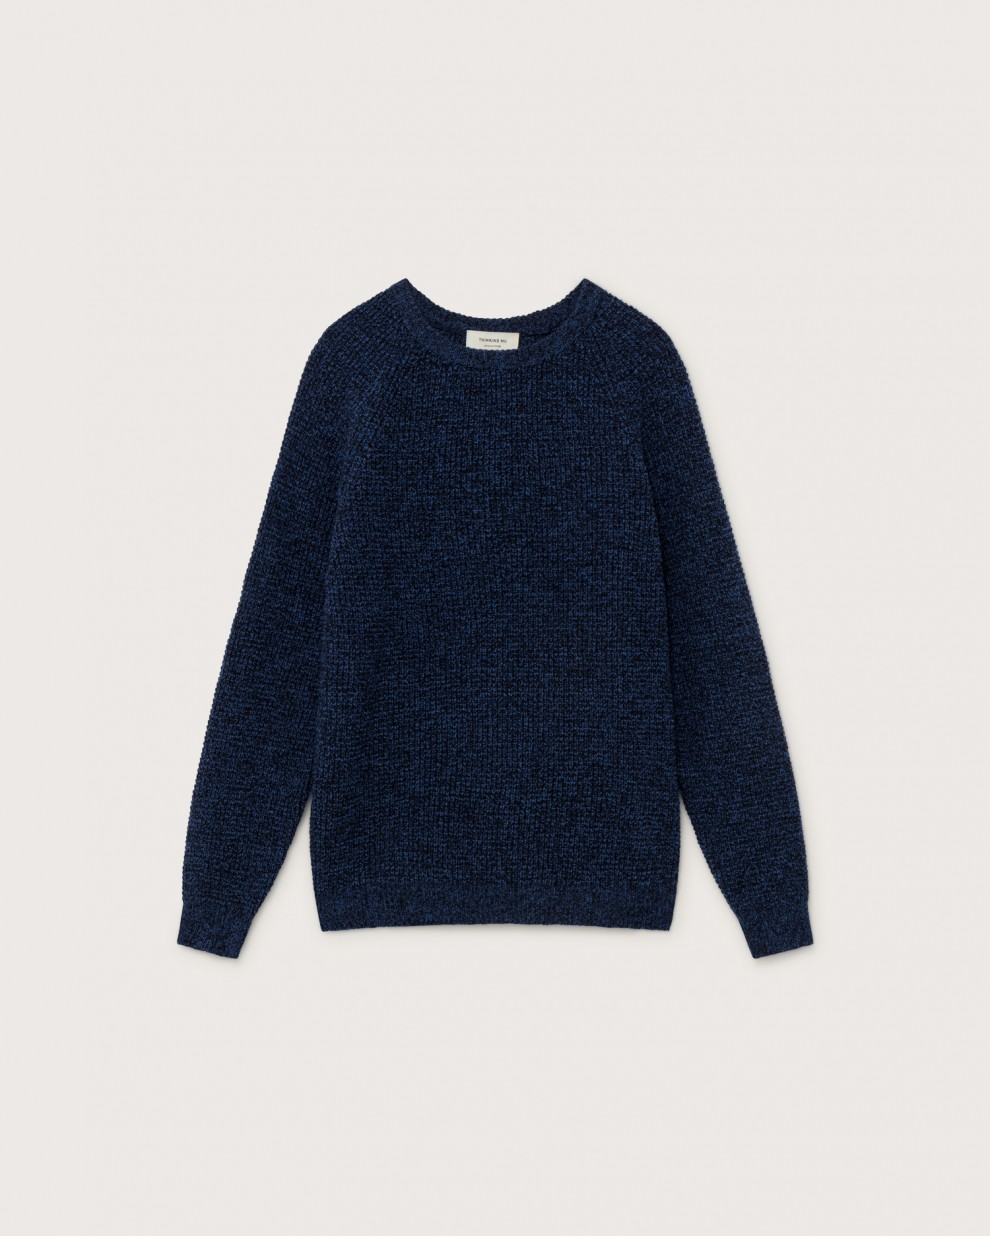 NAVY ANTEROS SWEATER